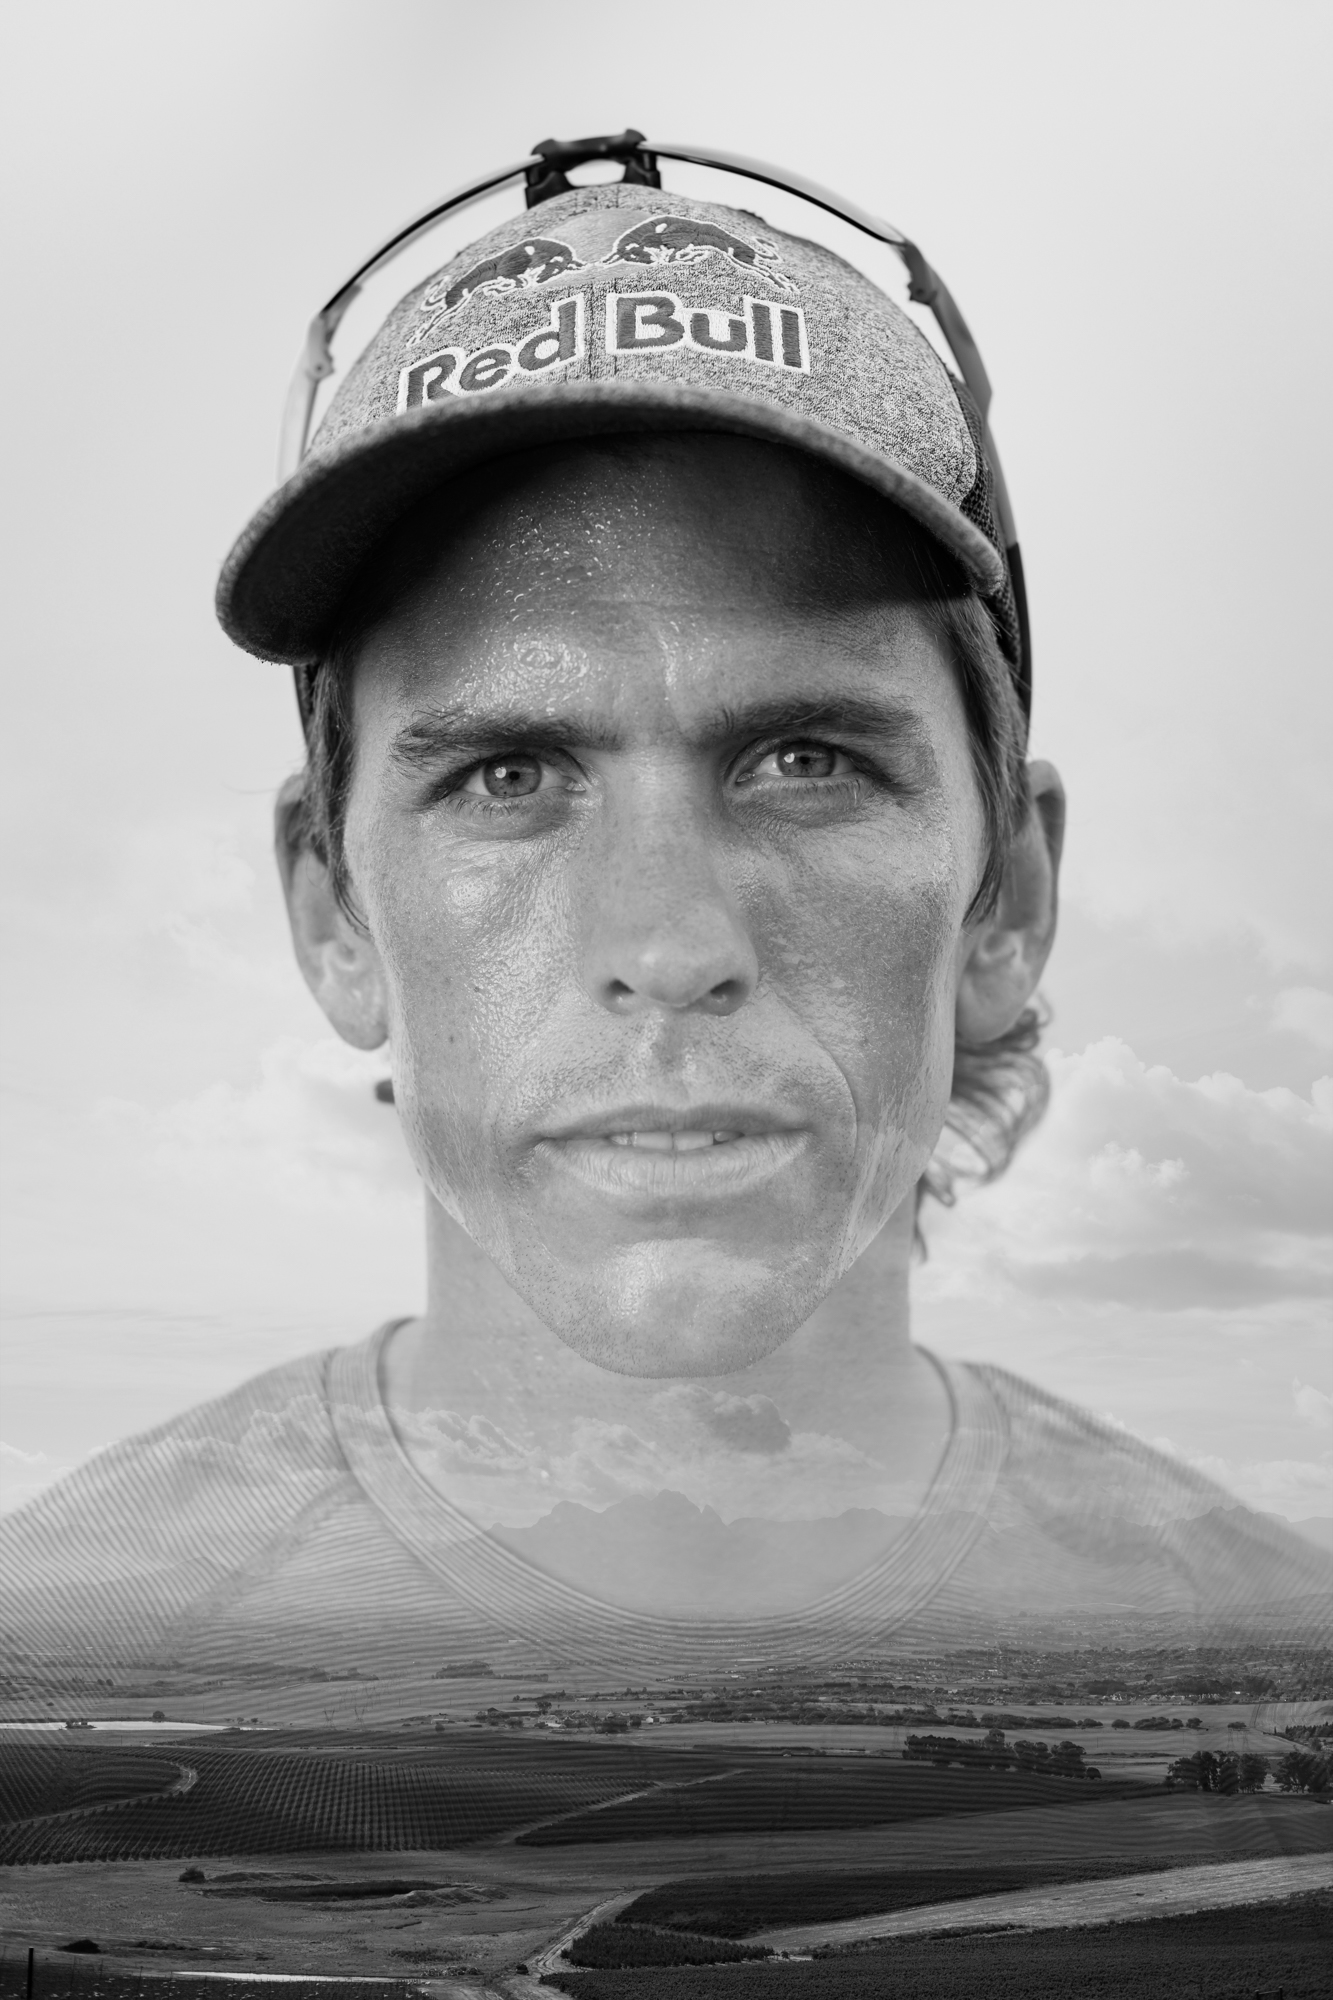 Ryan Sandes poses for a portrait at Meerendal in Cape Town, South Africa, on February 27, 2019.